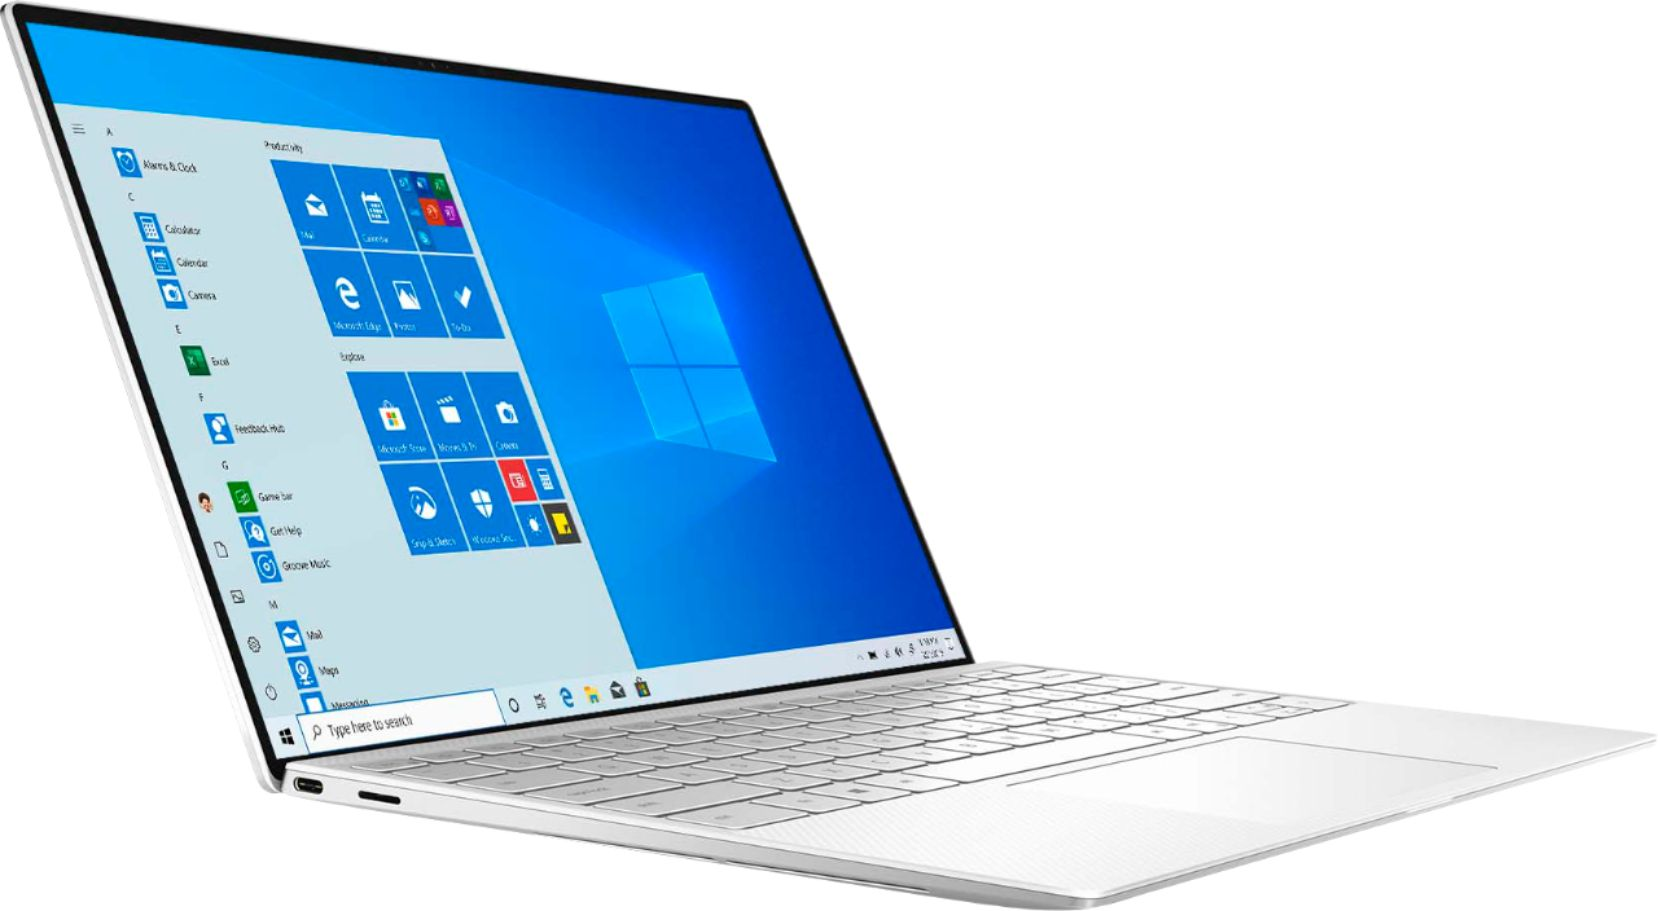 """Angle Zoom. Dell - XPS 13.4"""" UHD+ Touch Laptop - Intel Core i7 - 16GB Memory - 512GB SSD - Frost White."""